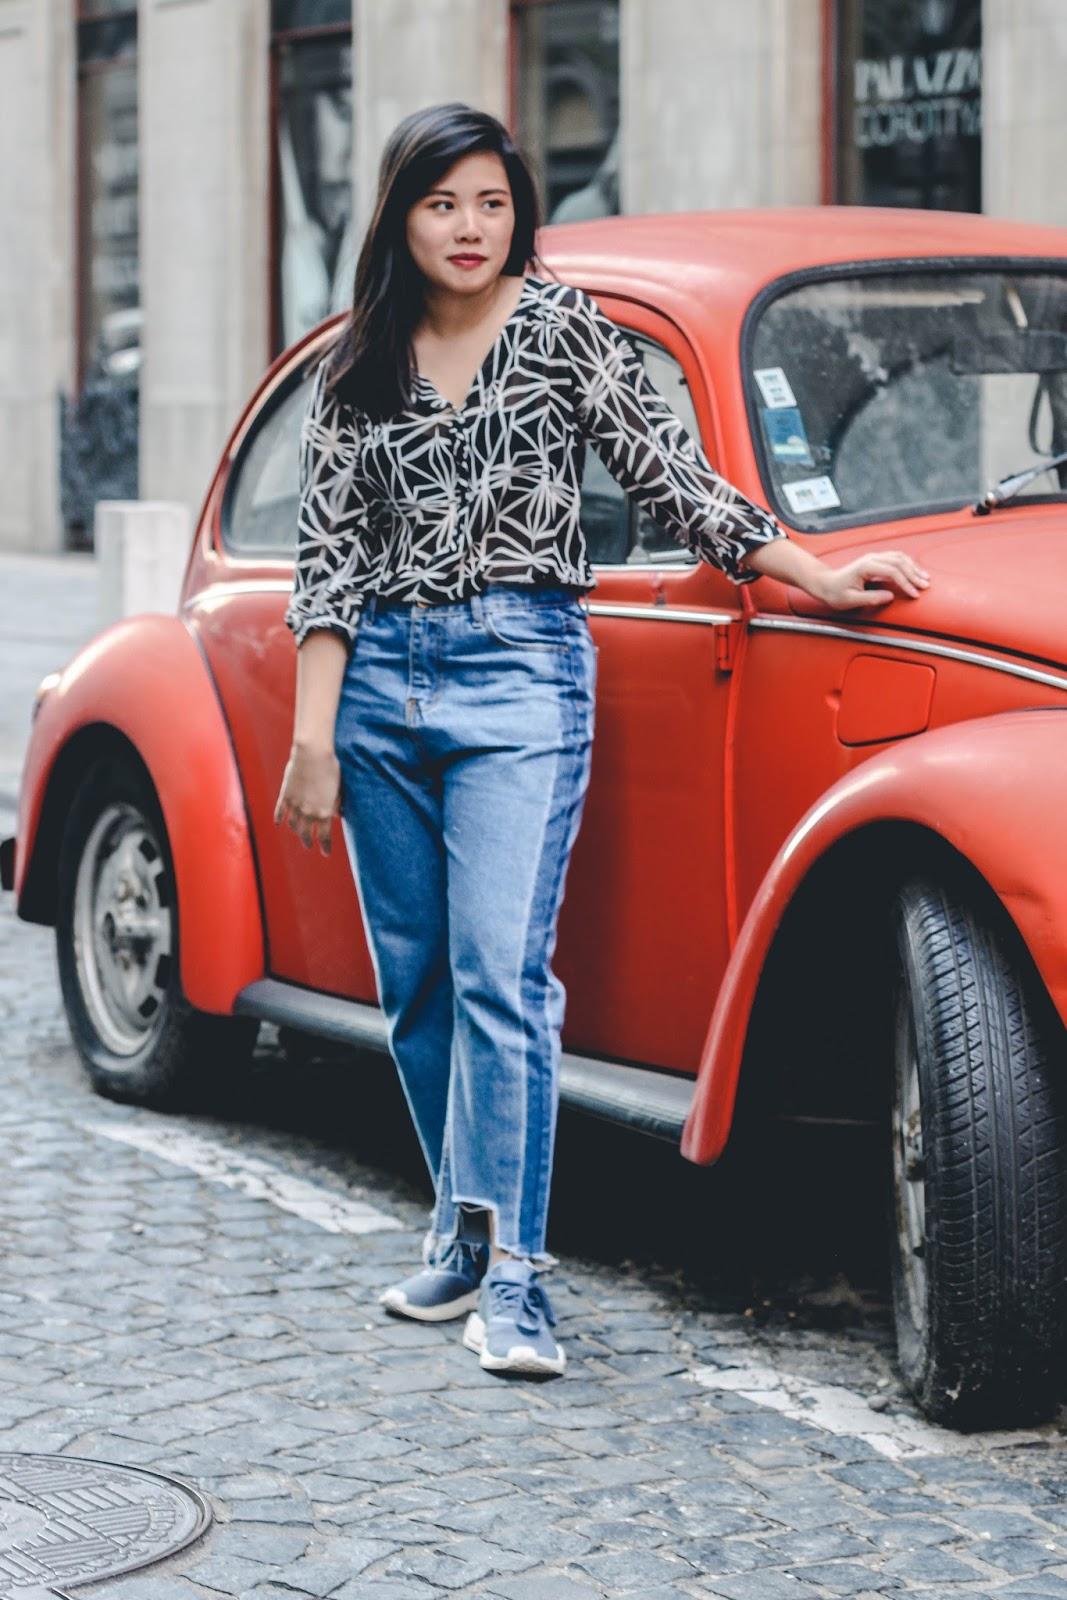 singapore blogger street style vintage car adidas denim photography photographer look book outfit stylist wiwt ootd